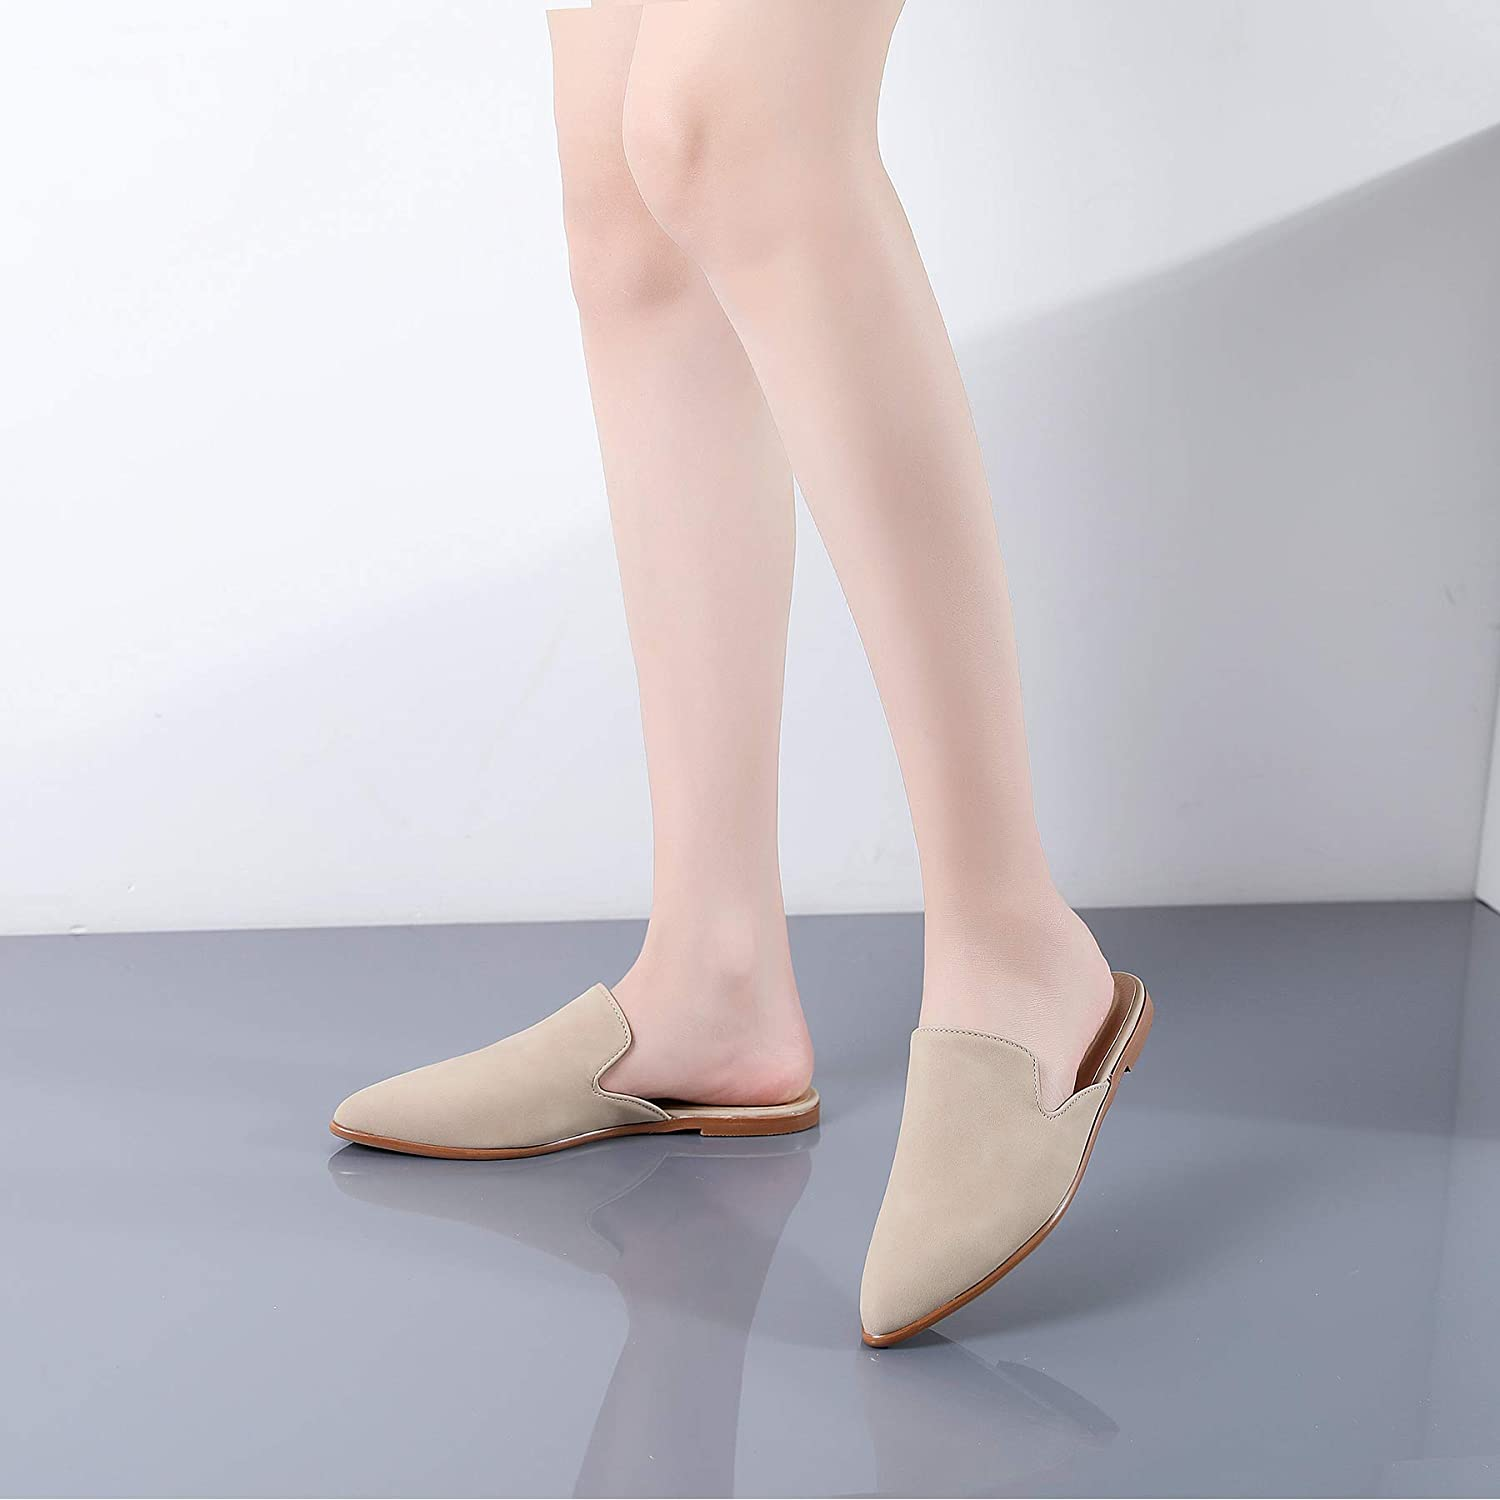 Tilocow Flat Mules for Women Closed Pointed Toe Backless Mule Sandals Comfortable Slides Mules Shoes Ladies Slip-on Loafers